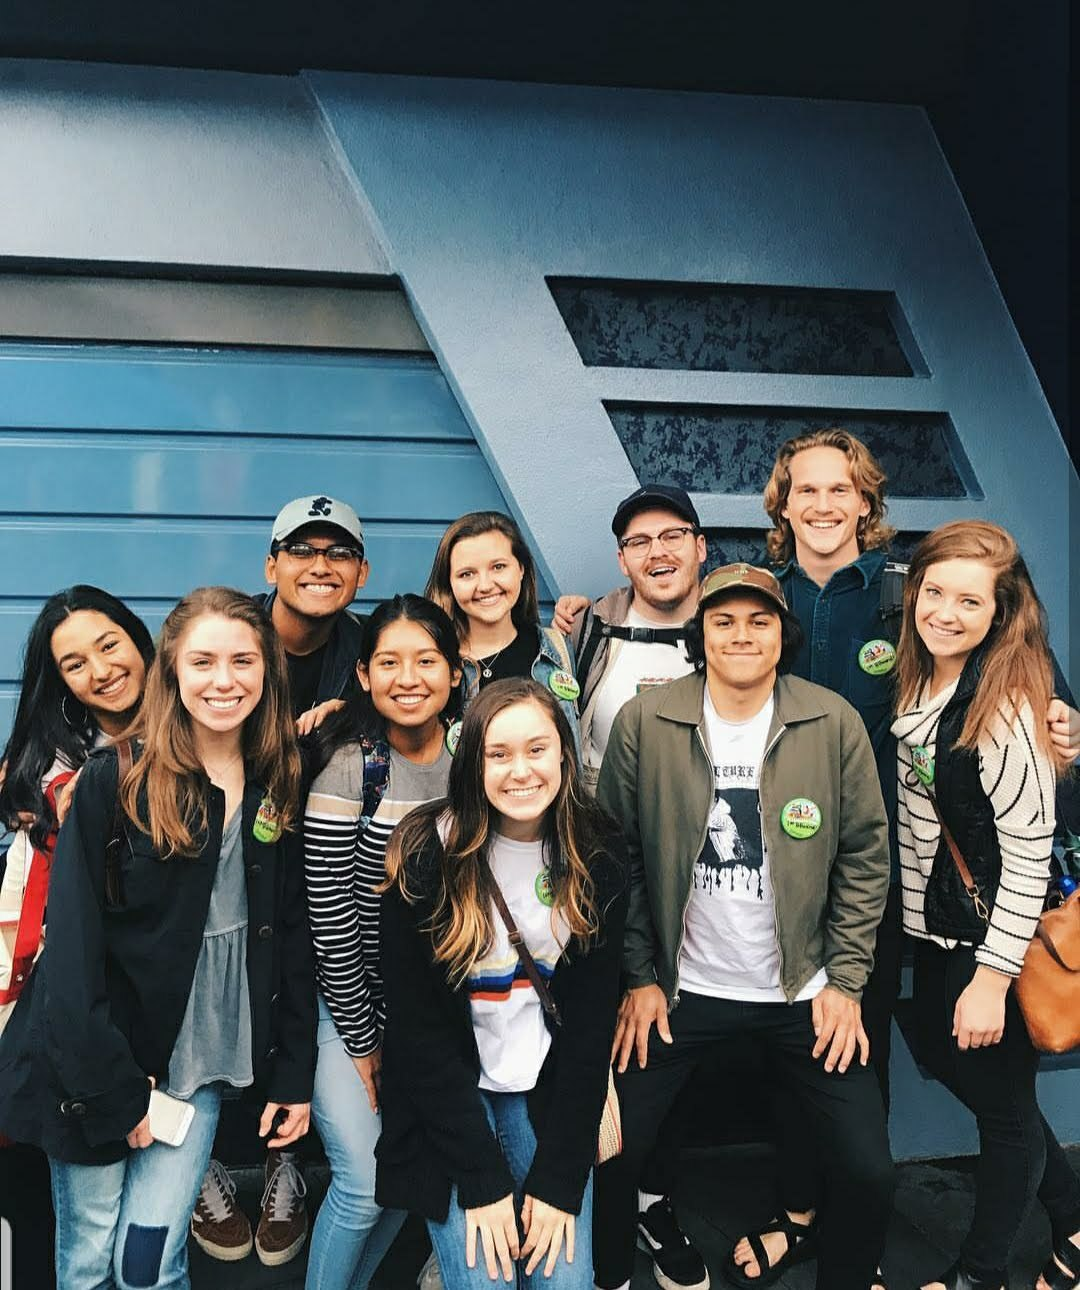 Social Media team at Disneyland